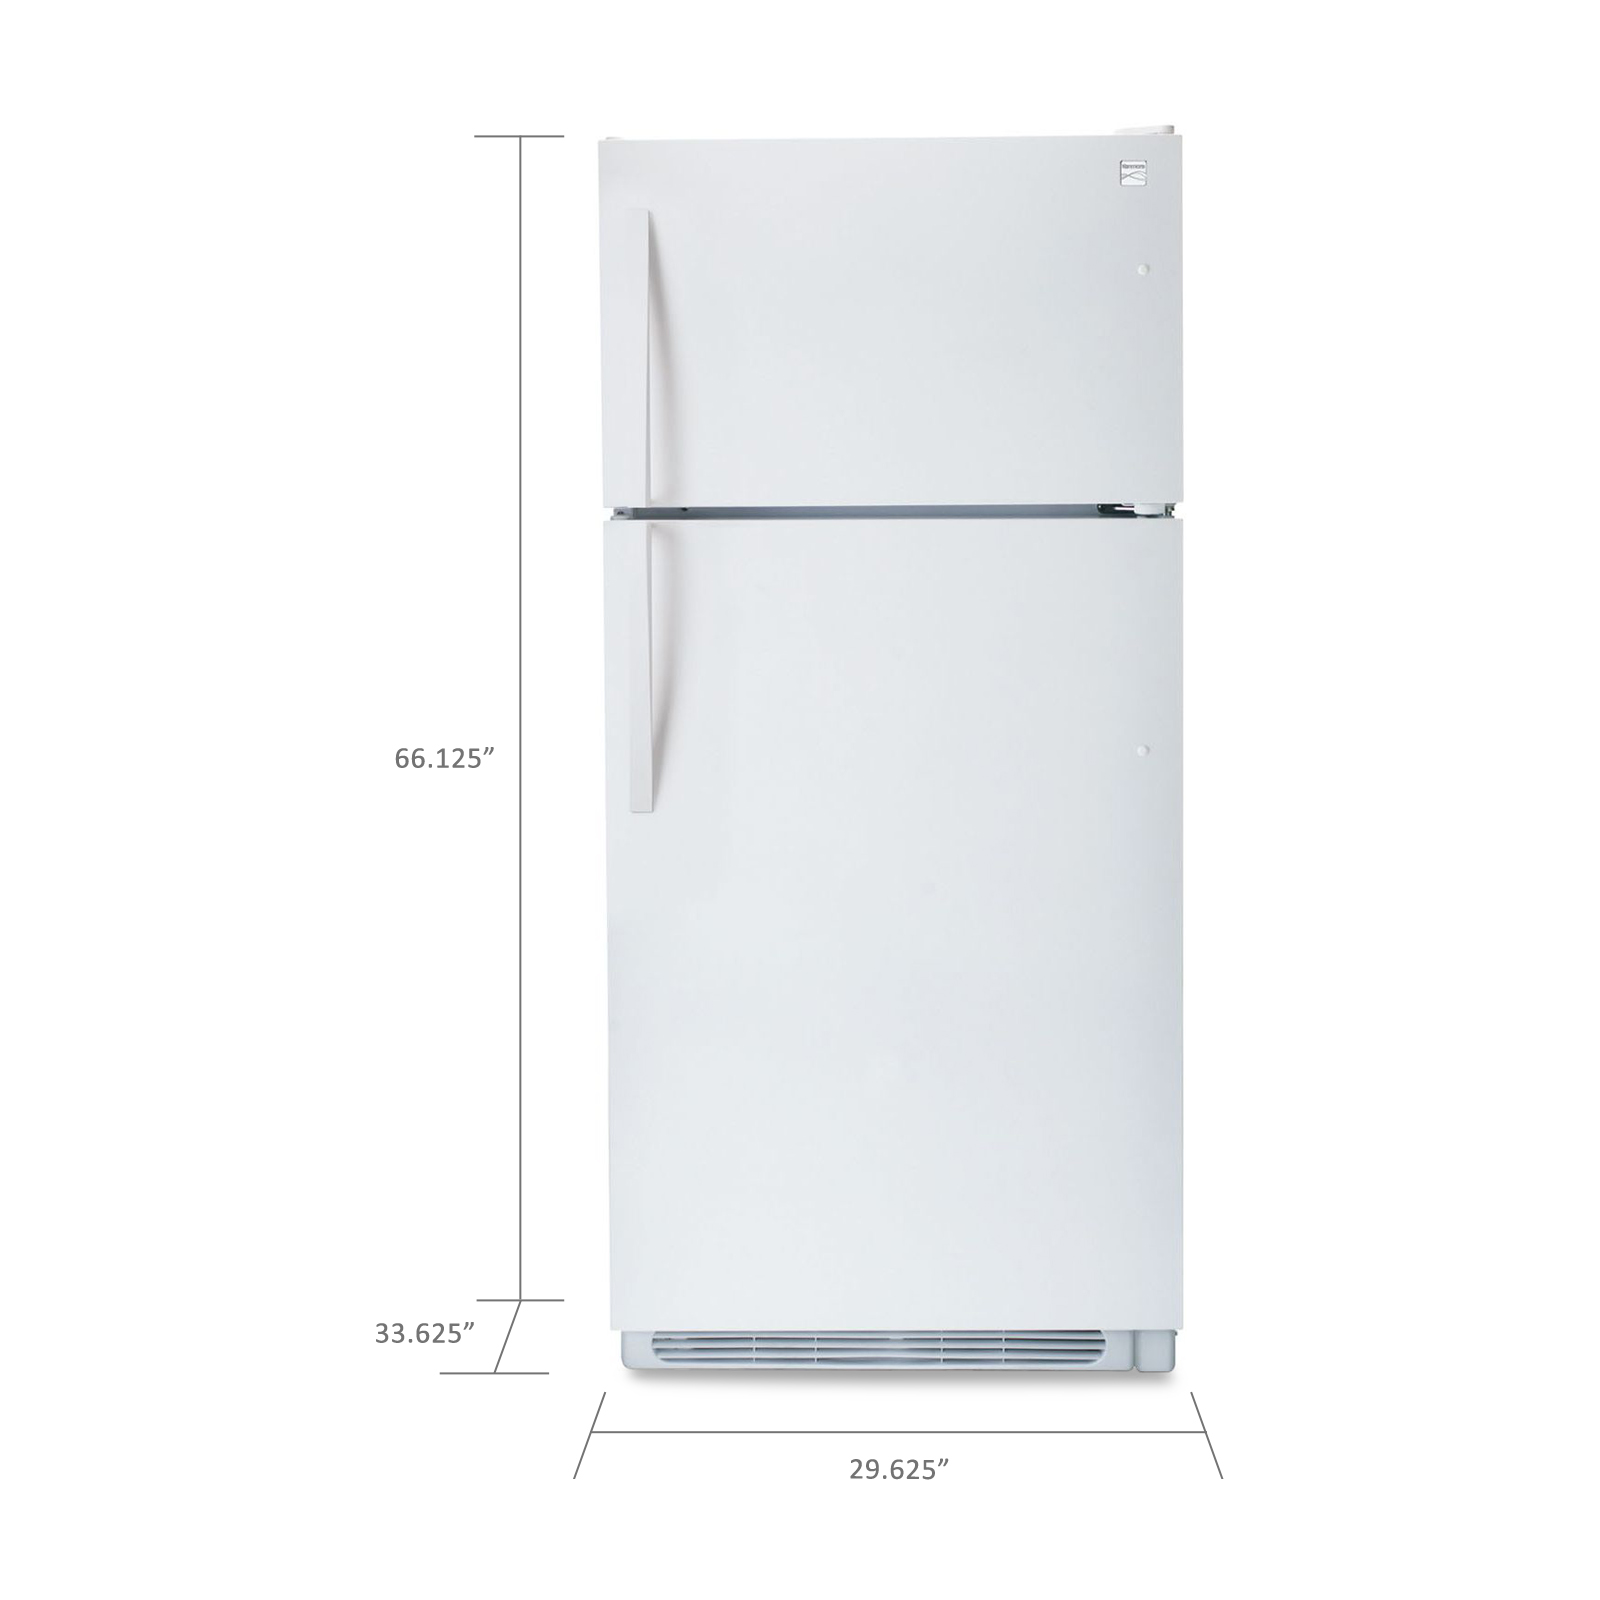 Kenmore 18.2 cu. ft. Top-Freezer Refrigerator w/ Wire Shelves - White